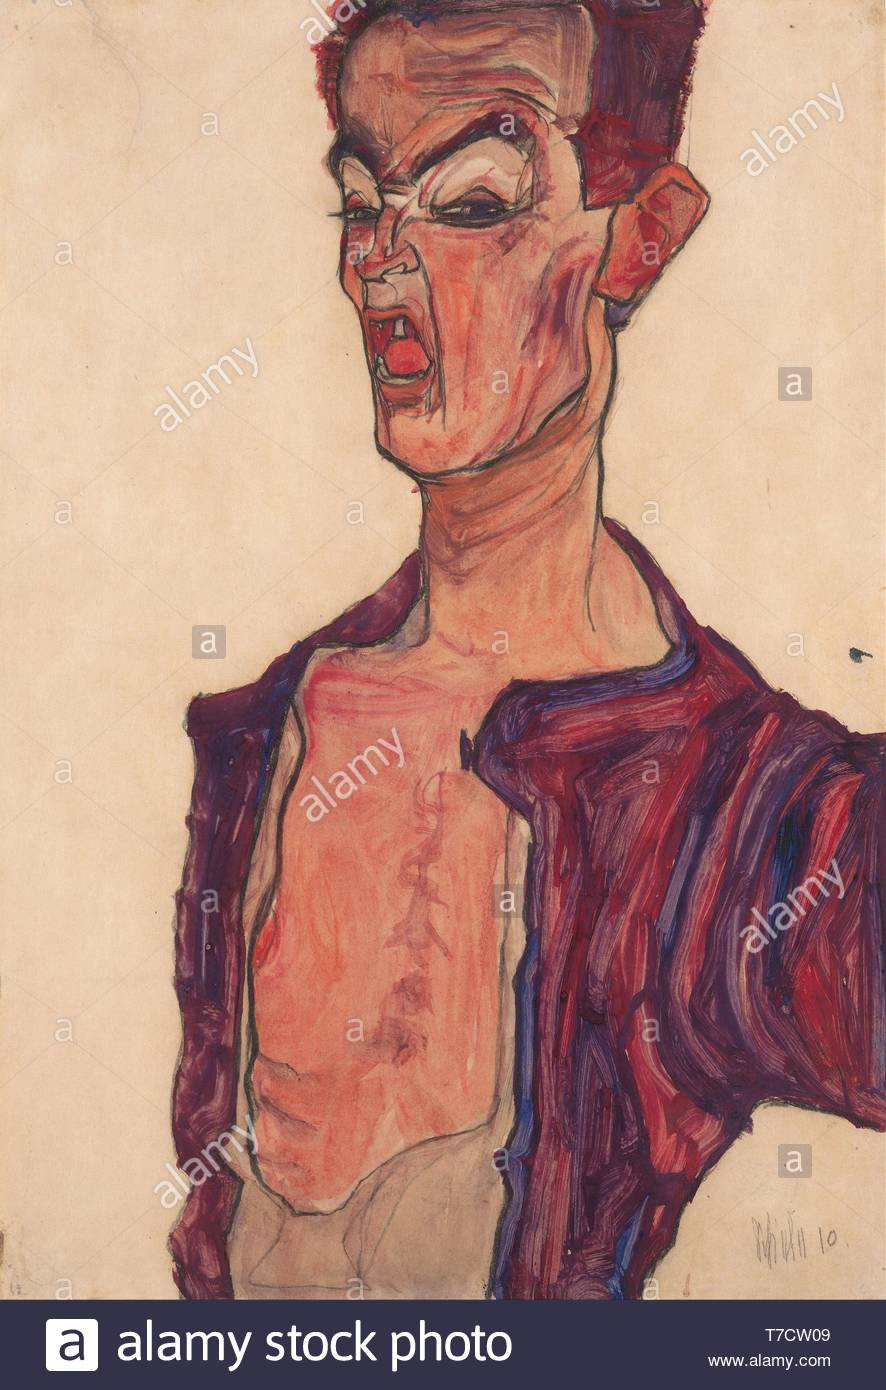 Egon-Schiele-Self-Portrait, Grimacing Stock Photo